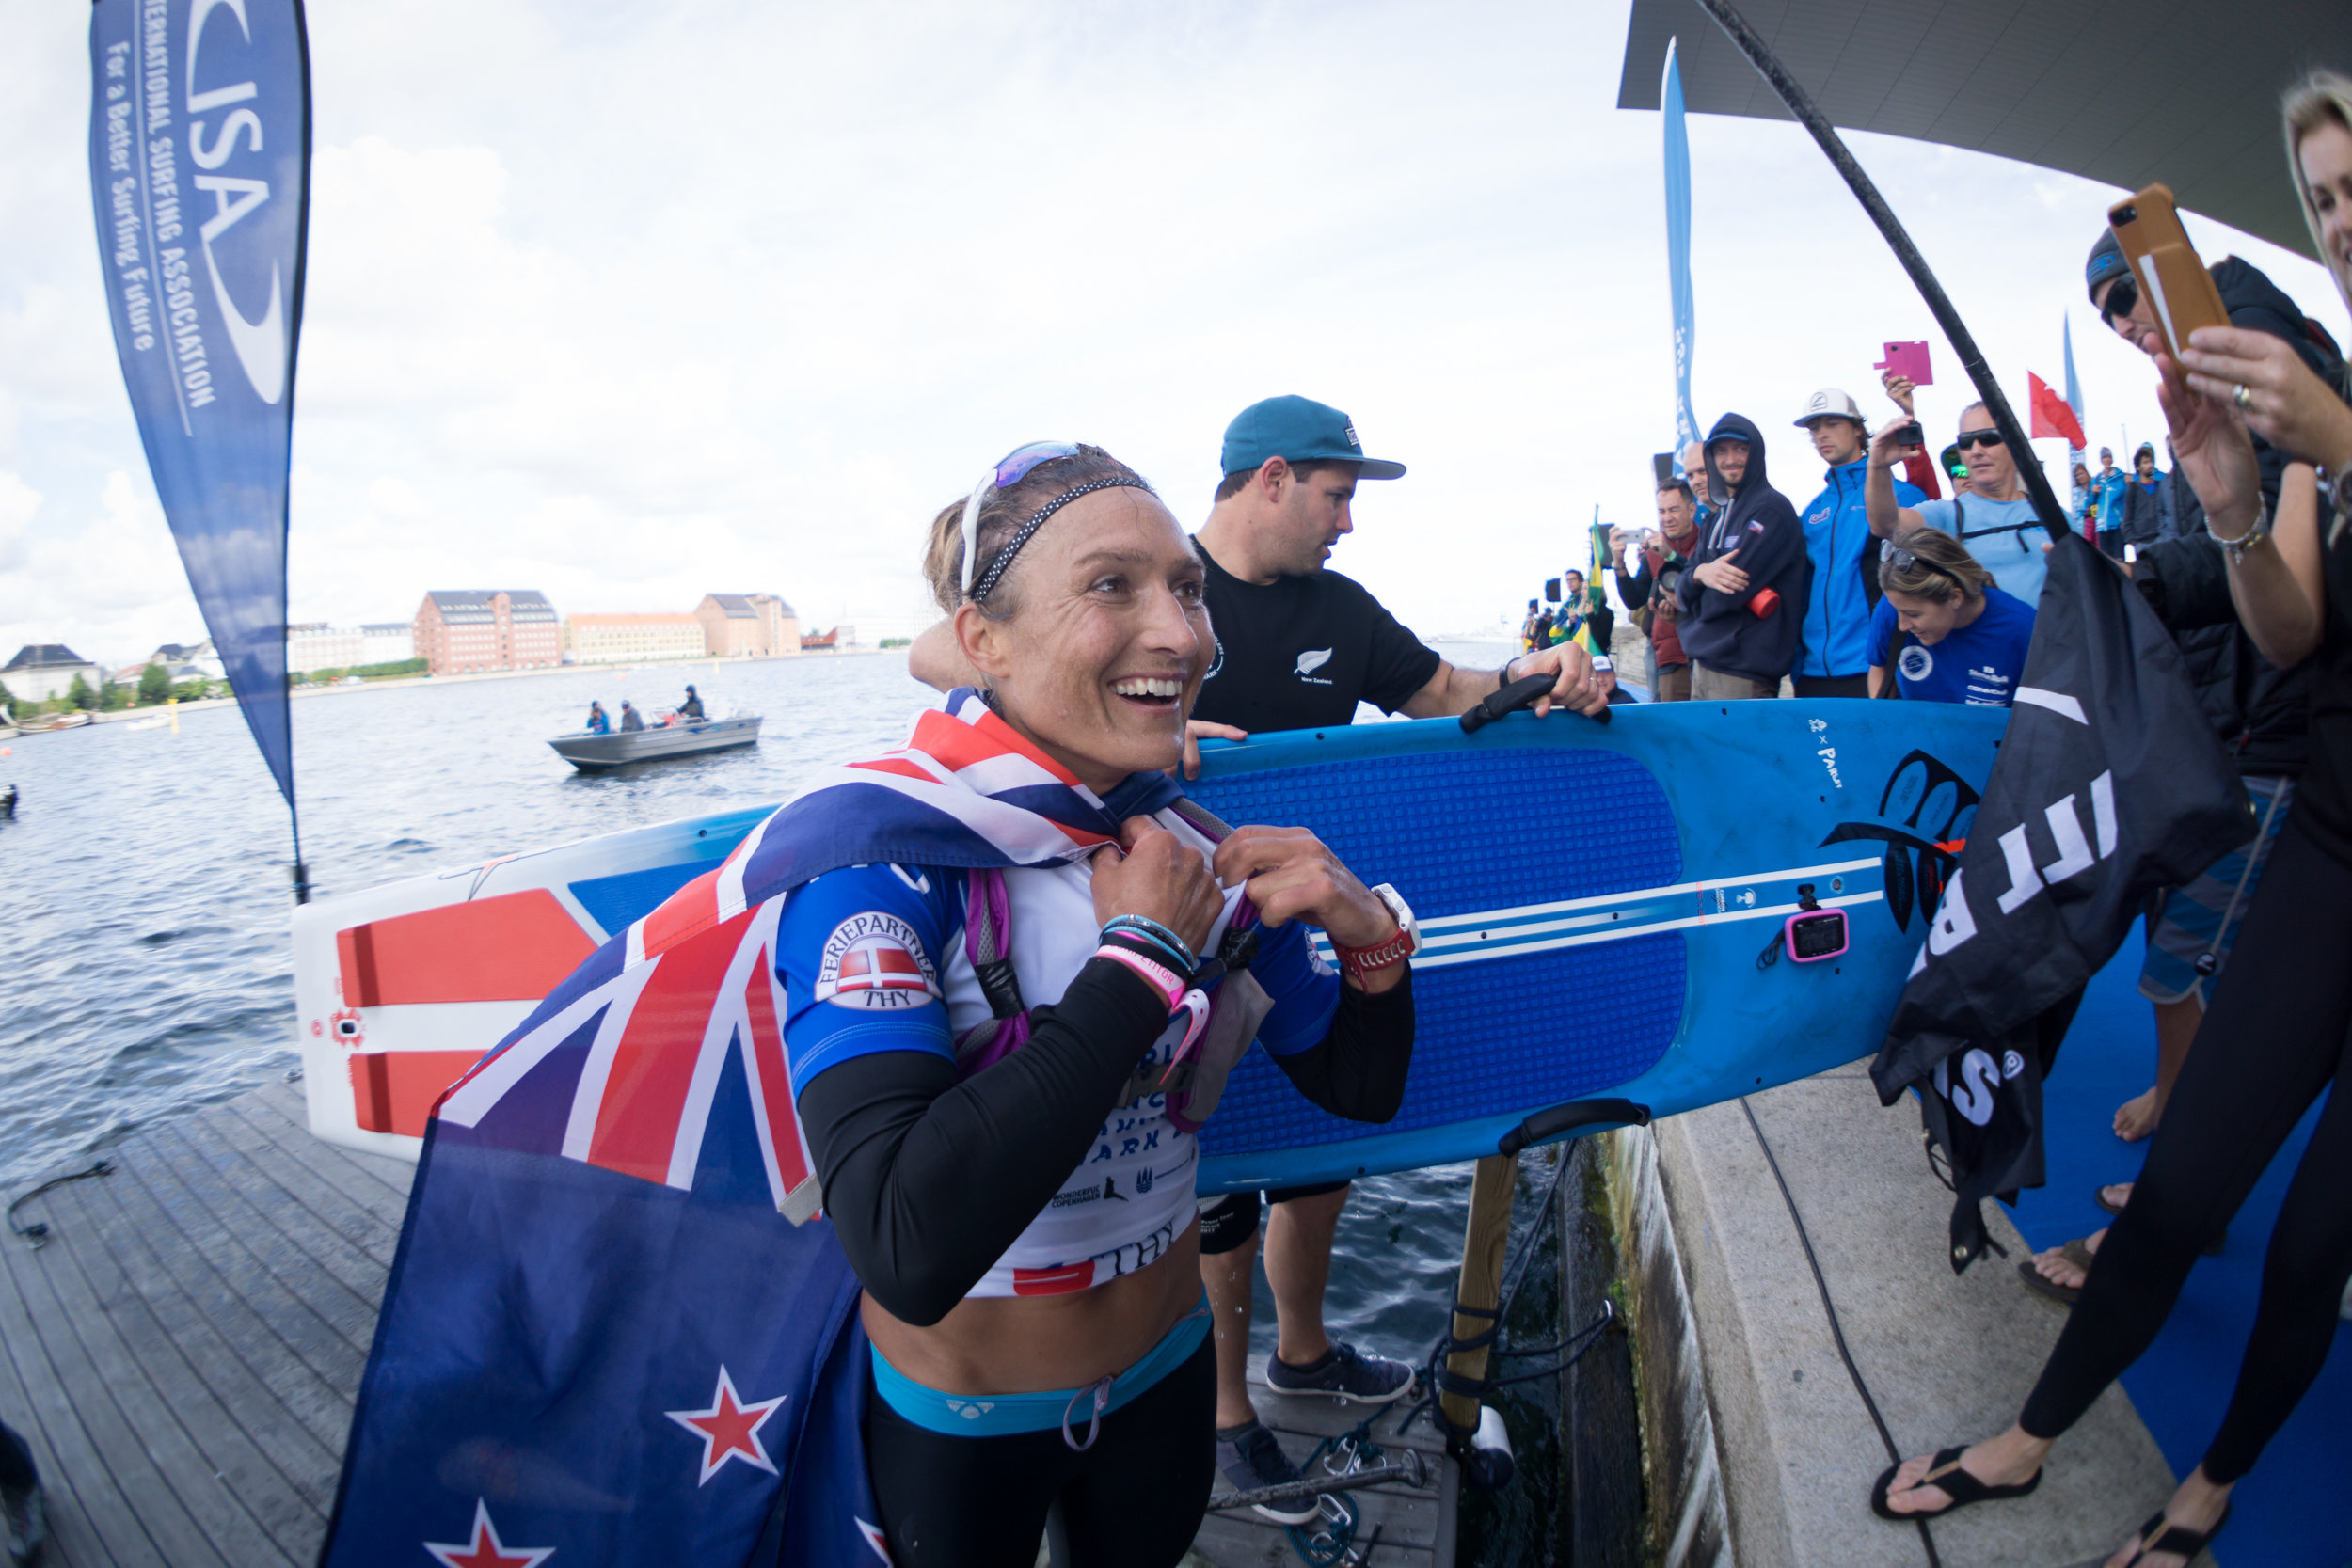 New Zealand powerhouse Annabel Anderson after winning the Women's SUP Distance Race in Copenhagen.